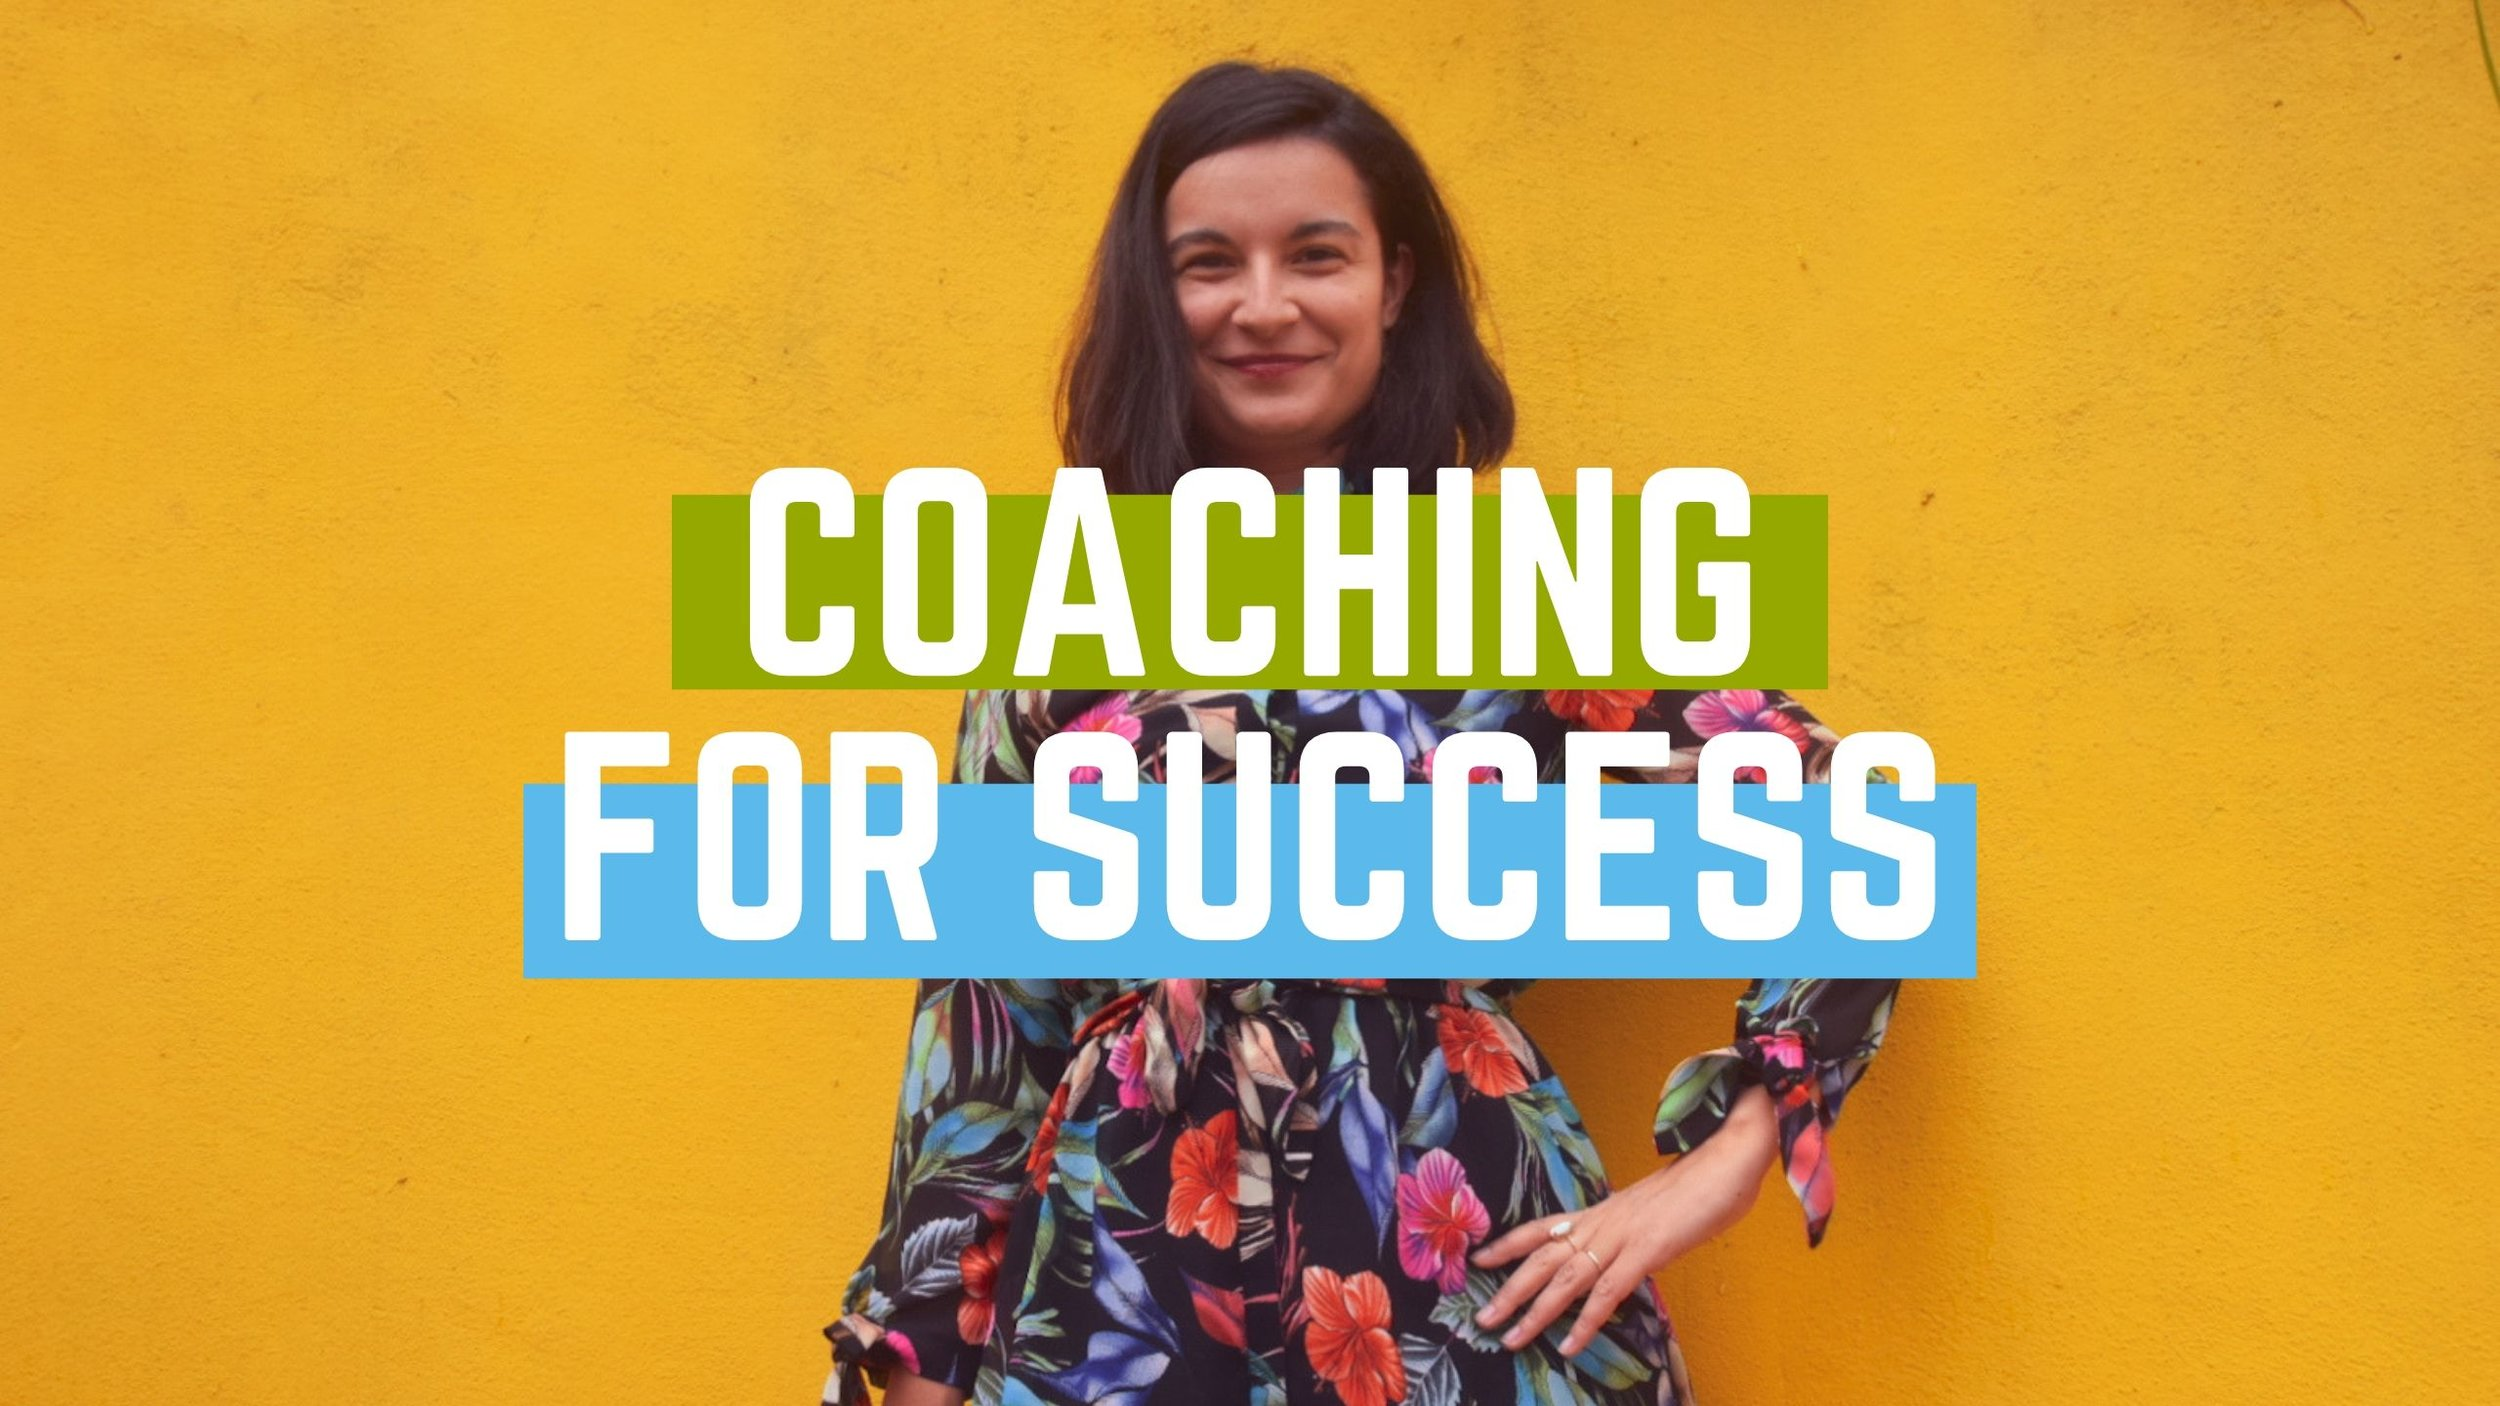 My name is Monica Badiu. I am a visibility coach who helps established entrepreneurs grow with powerful visibility & mindset strategies.